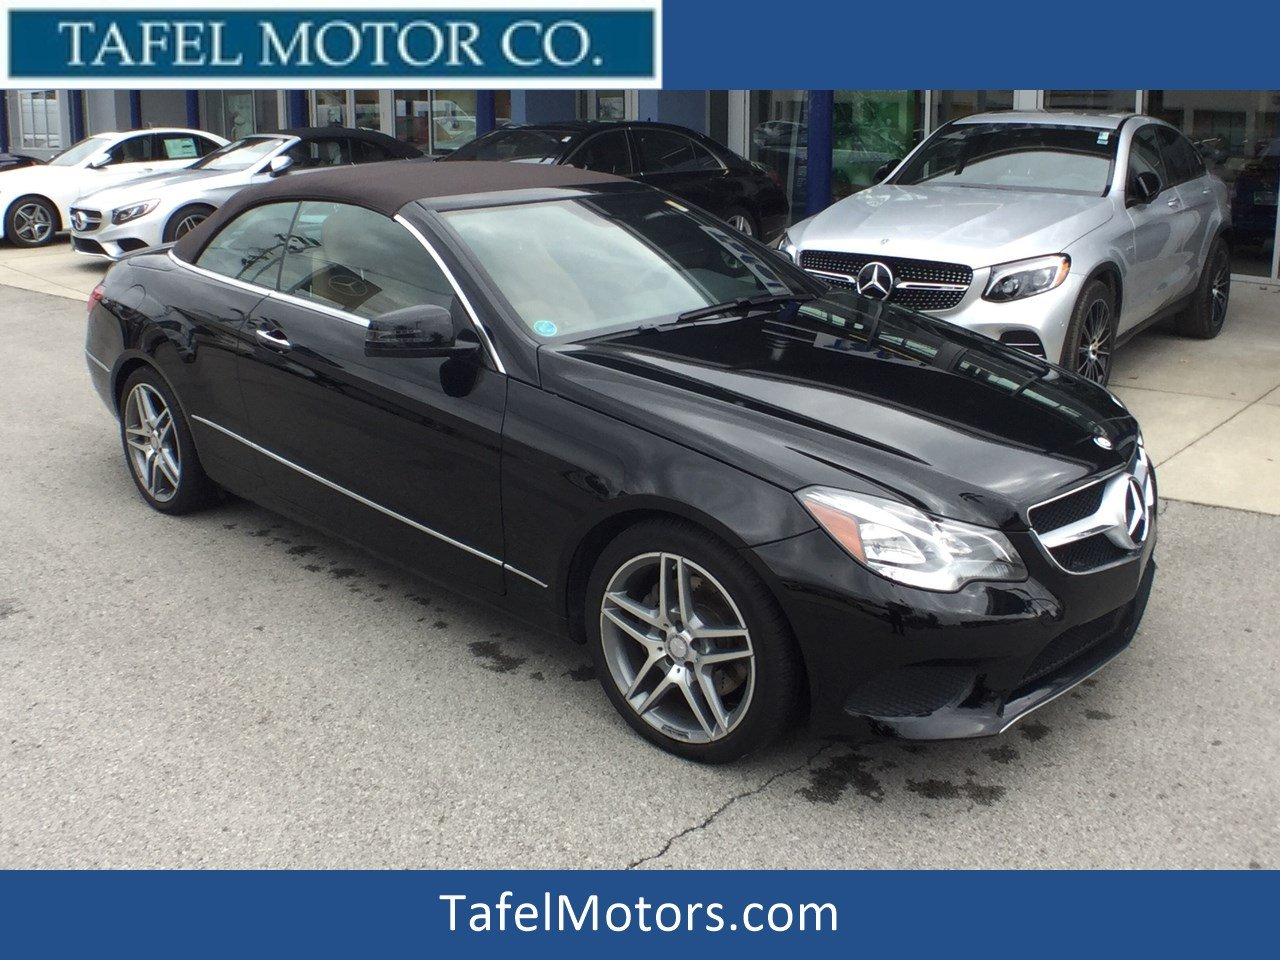 Pre owned 2014 mercedes benz e class e 350 cabriolet for Pre owned e class mercedes benz